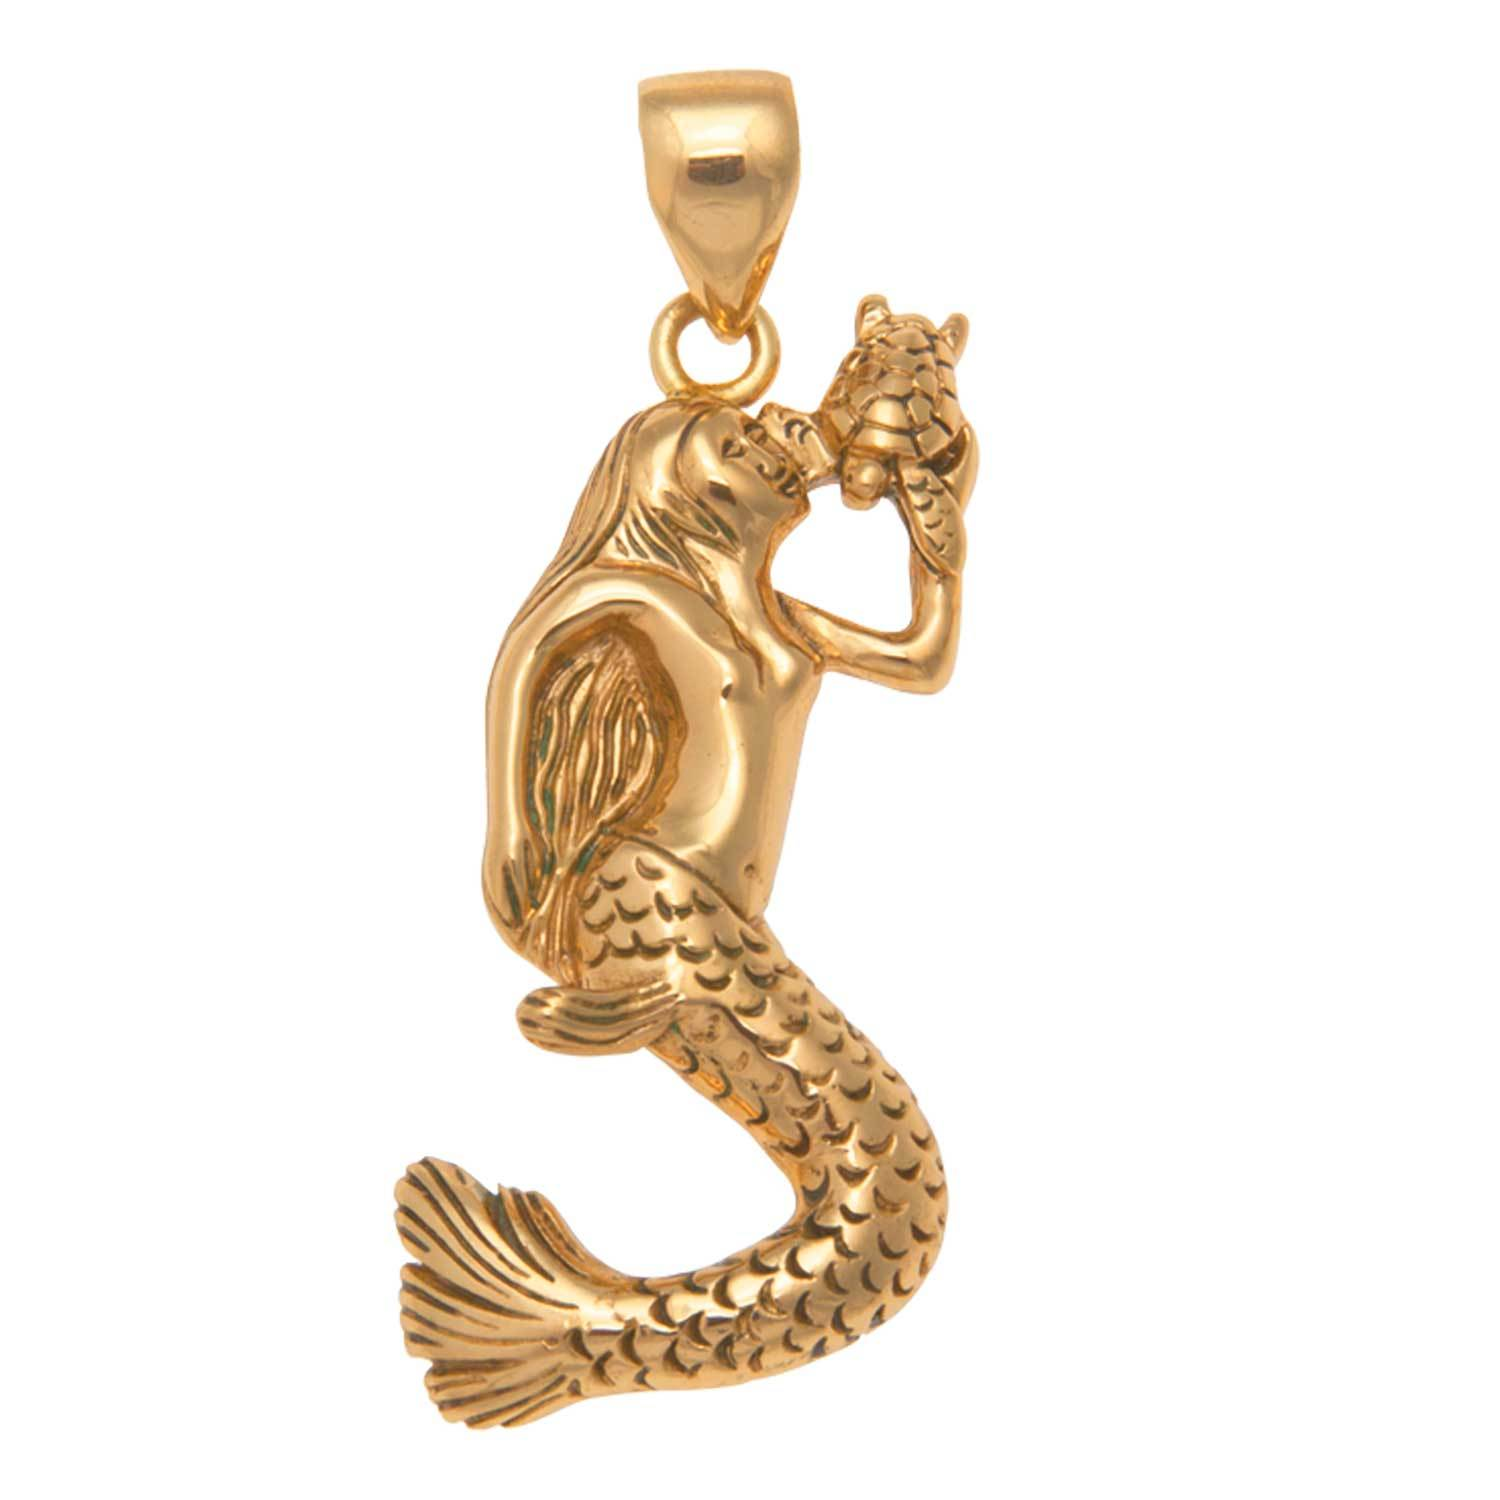 Alchemia Mermaid Pendant | Charles Albert Jewelry